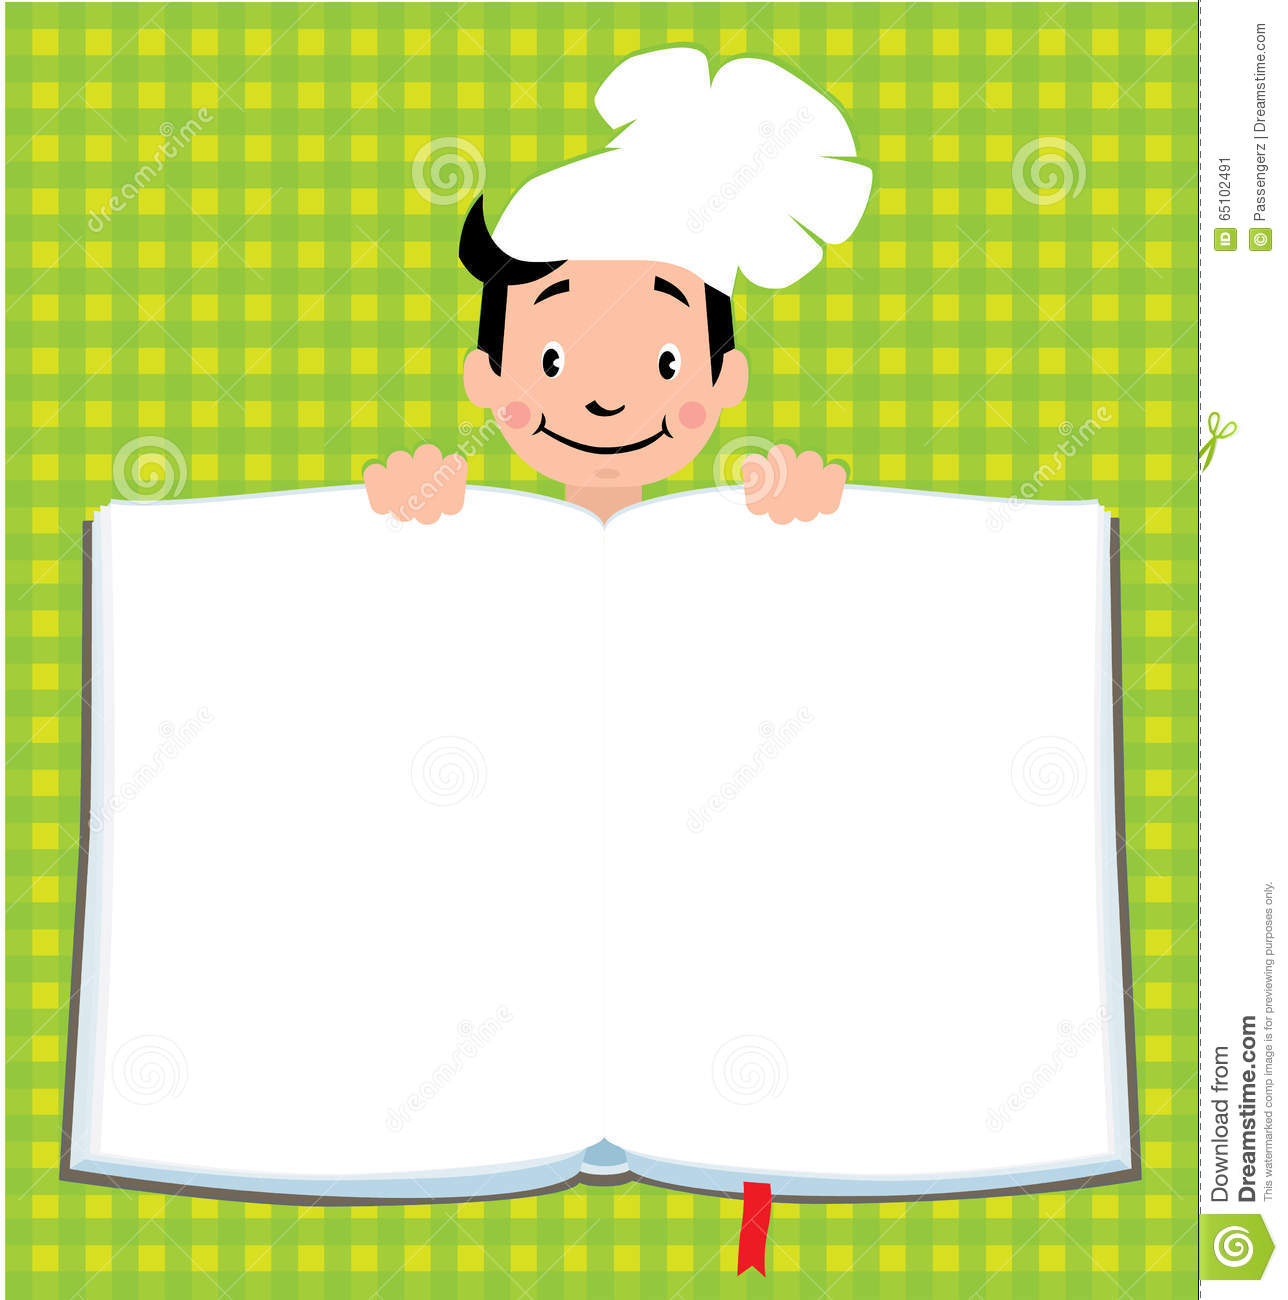 design template for kids menu with funny cook boy illustration